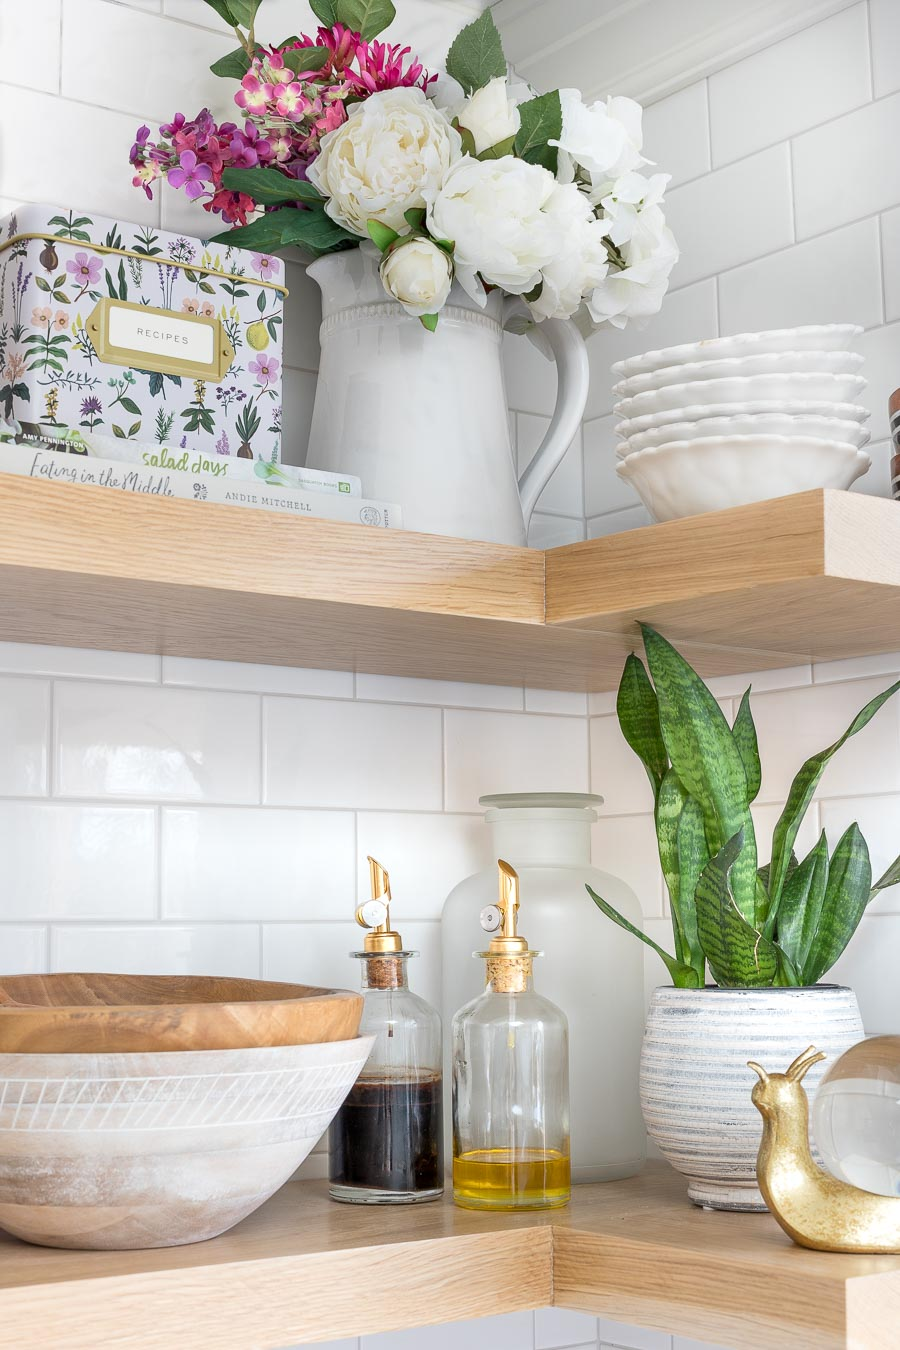 The Floating Corner Shelves in Our Kitchen - All the ...